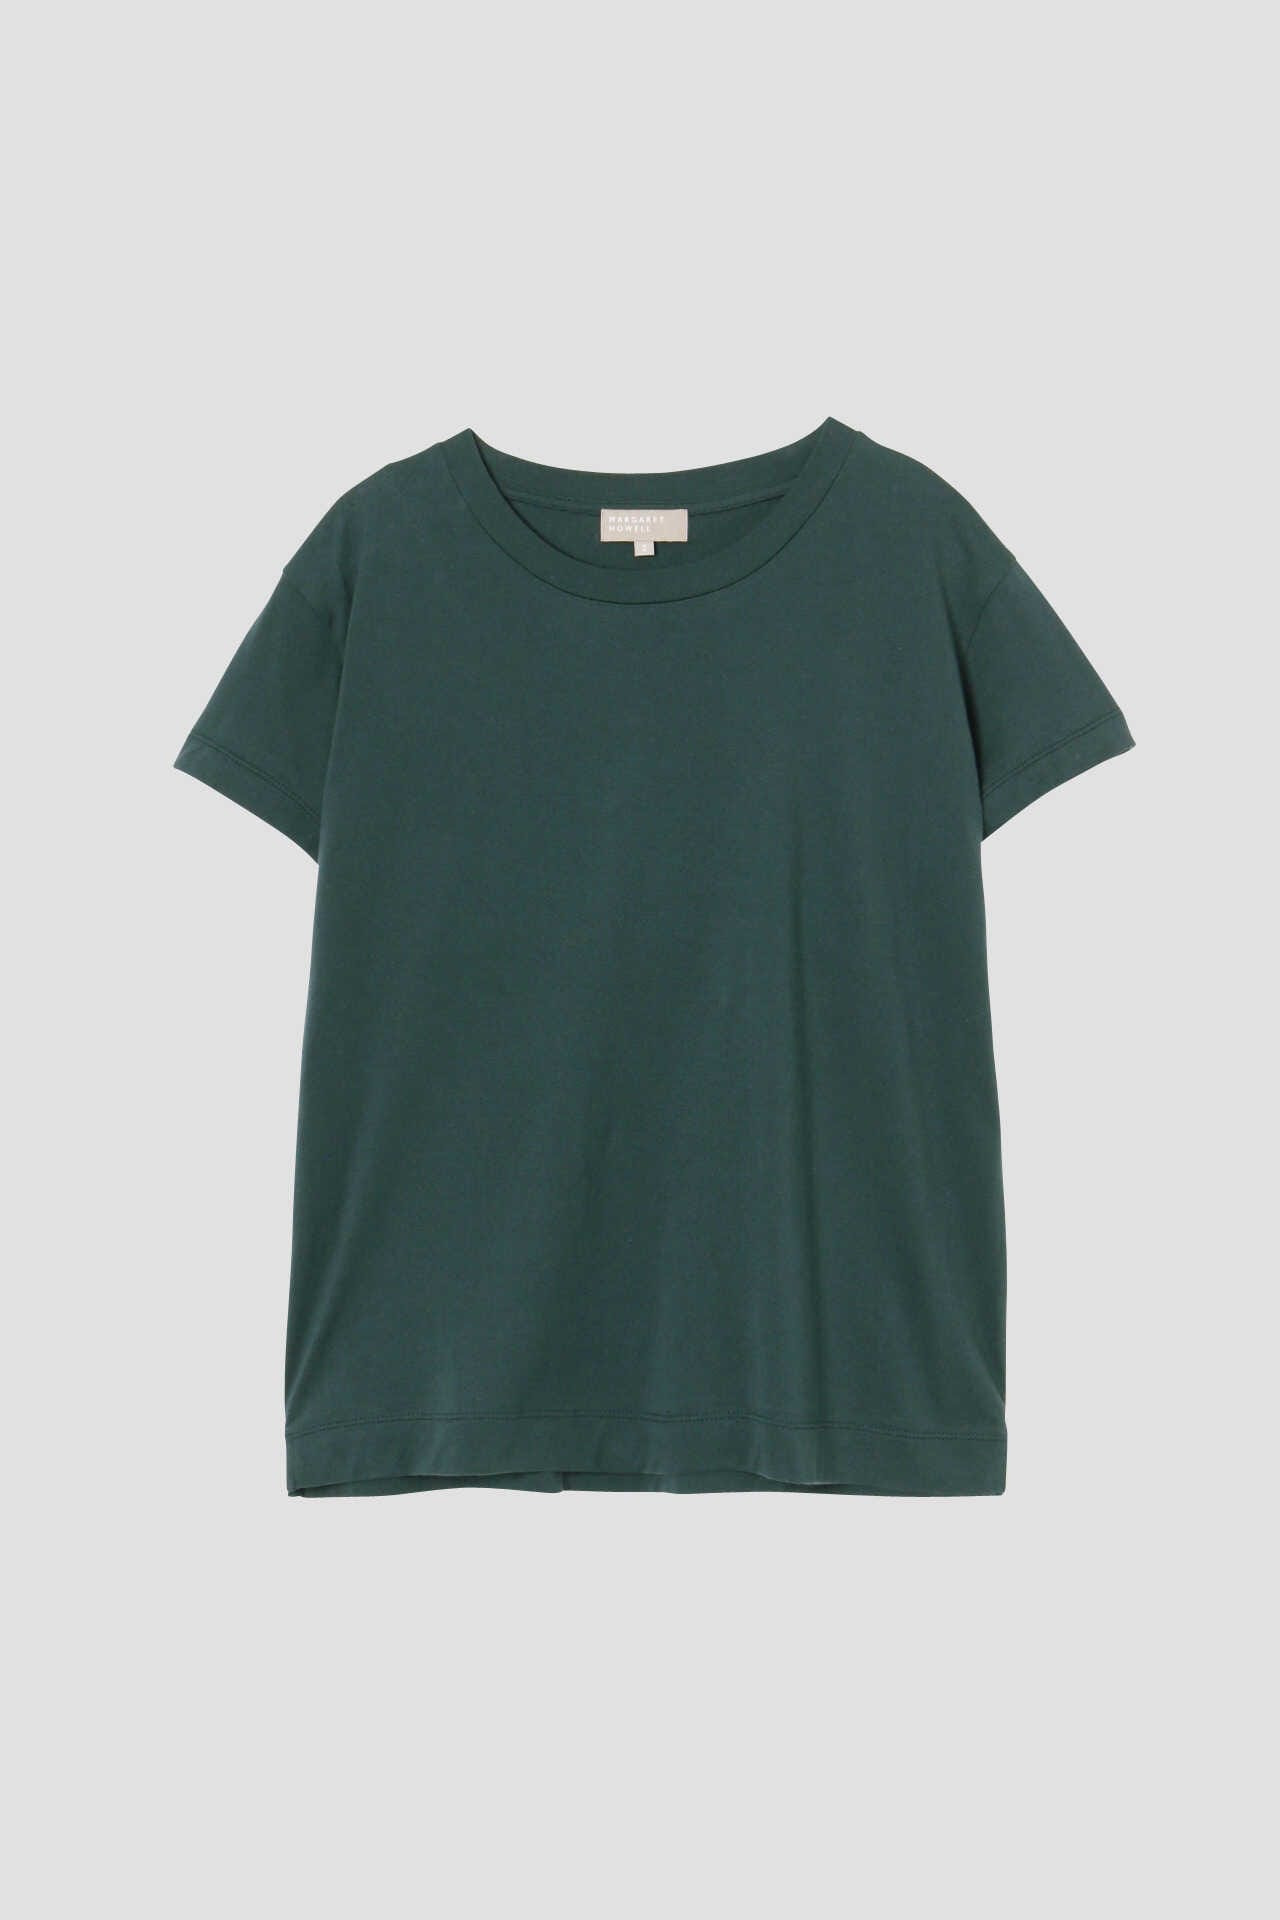 PLAIN COTTON JERSEY1